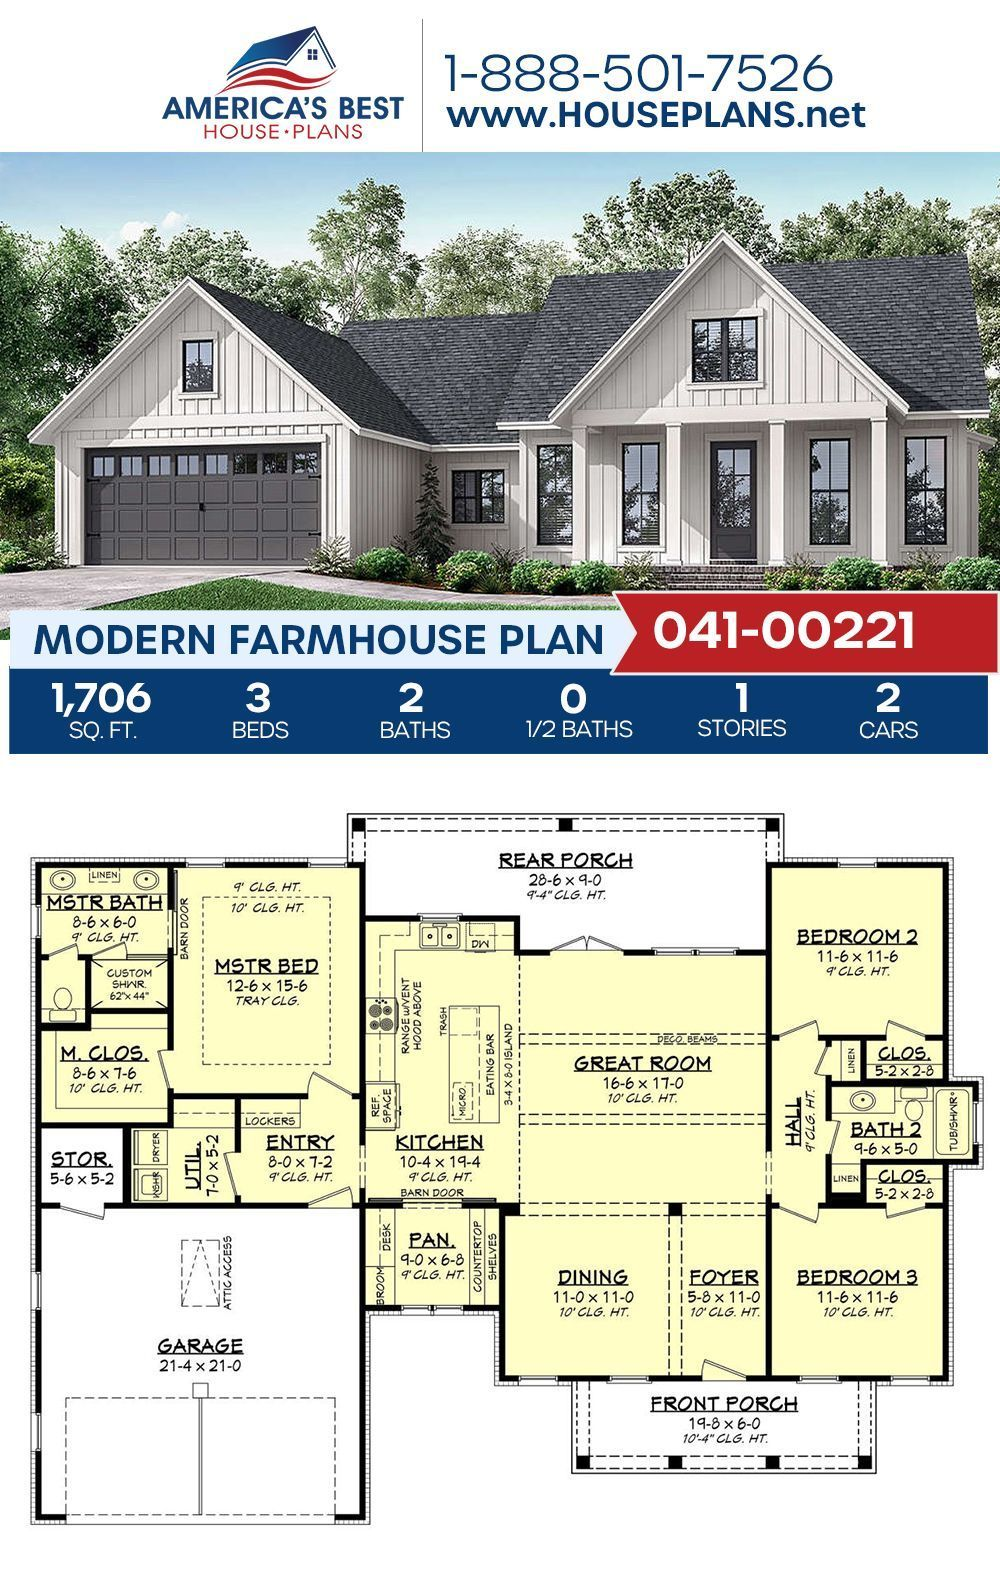 Modern Farmhouse Plan 041 00221 Looking For A Great Plan Under 2 000 Sq Farmhouse Modern Farmhouse Plans House Plans Farmhouse Basement House Plans